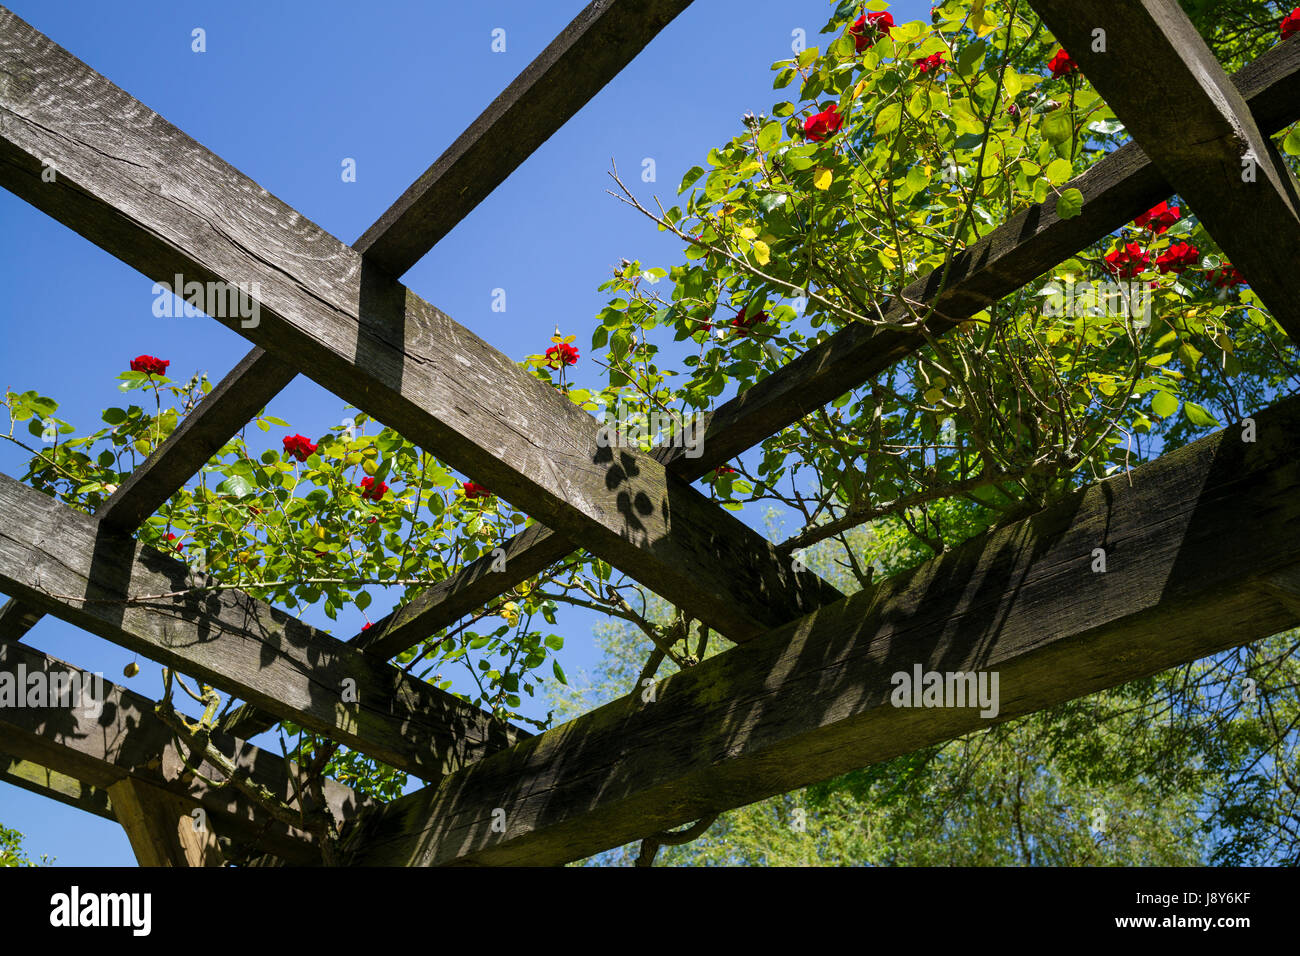 Blue Sky above the Rose Pergola in Rowntree Park, City of York, UK - Stock Image